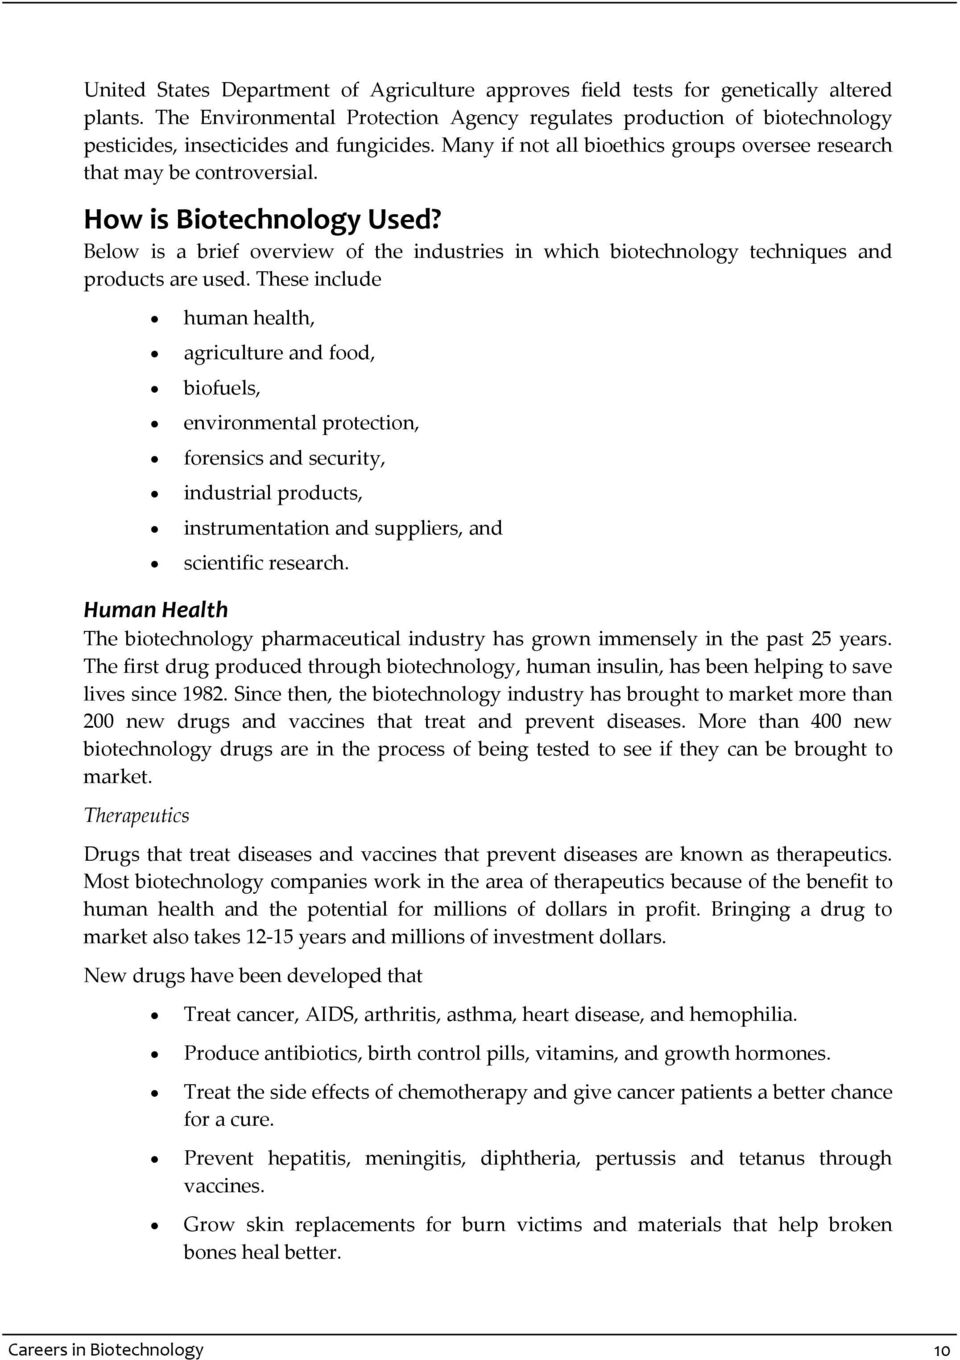 How is Biotechnology Used? Below is a brief overview of the industries in which biotechnology techniques and products are used.